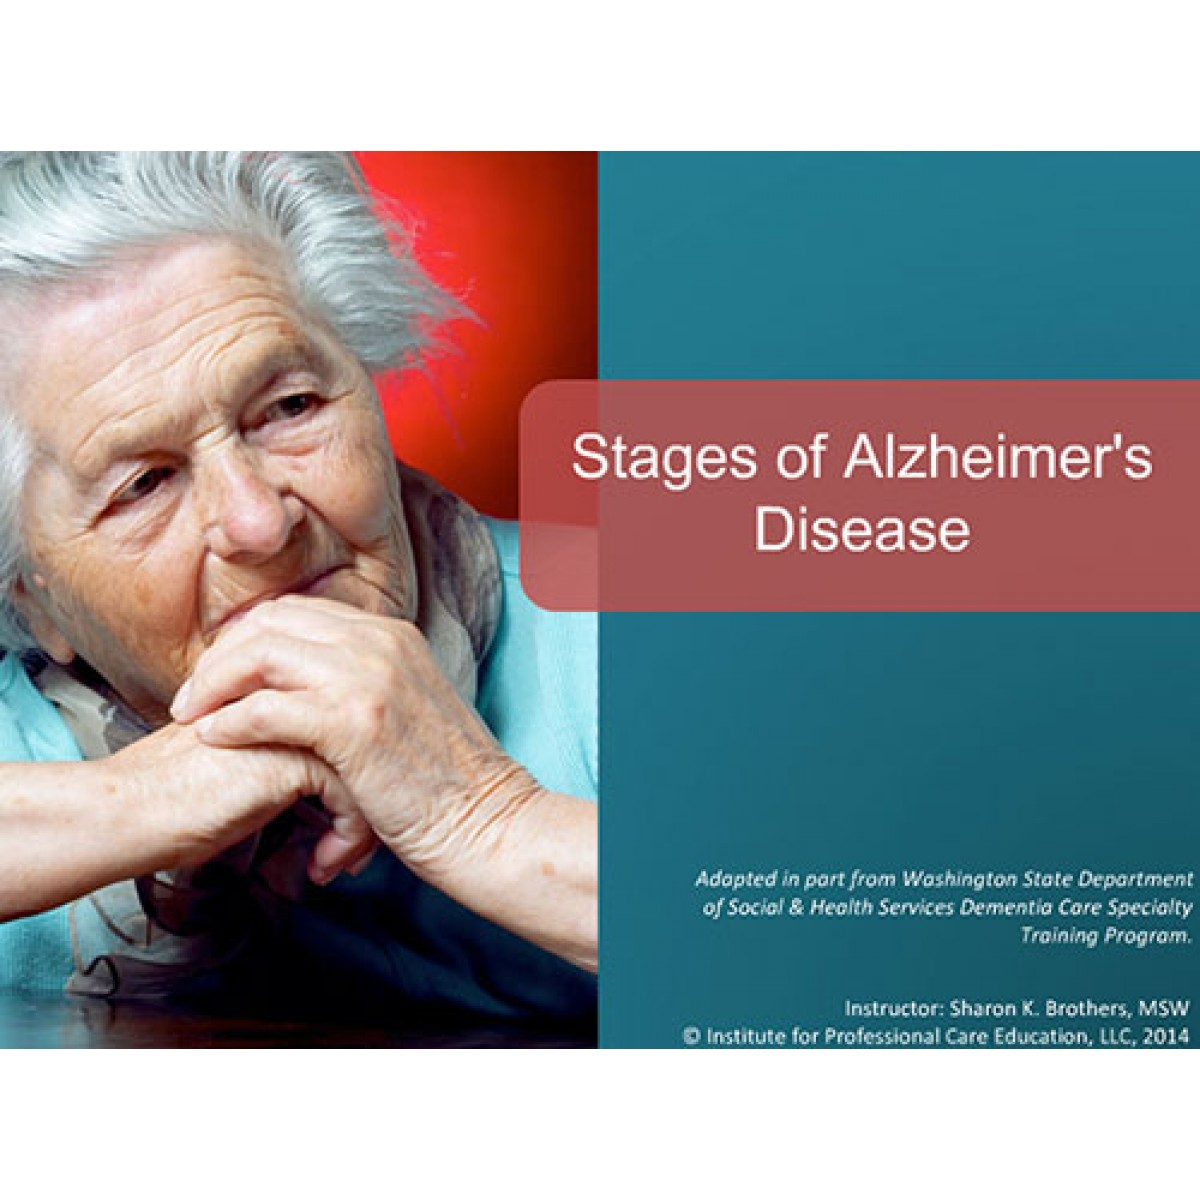 dementia alzheimer s disease and care Carers are everyday people who provide unpaid and ongoing care and support   alzheimers disease is the most common form of dementia, affecting up to 70% .